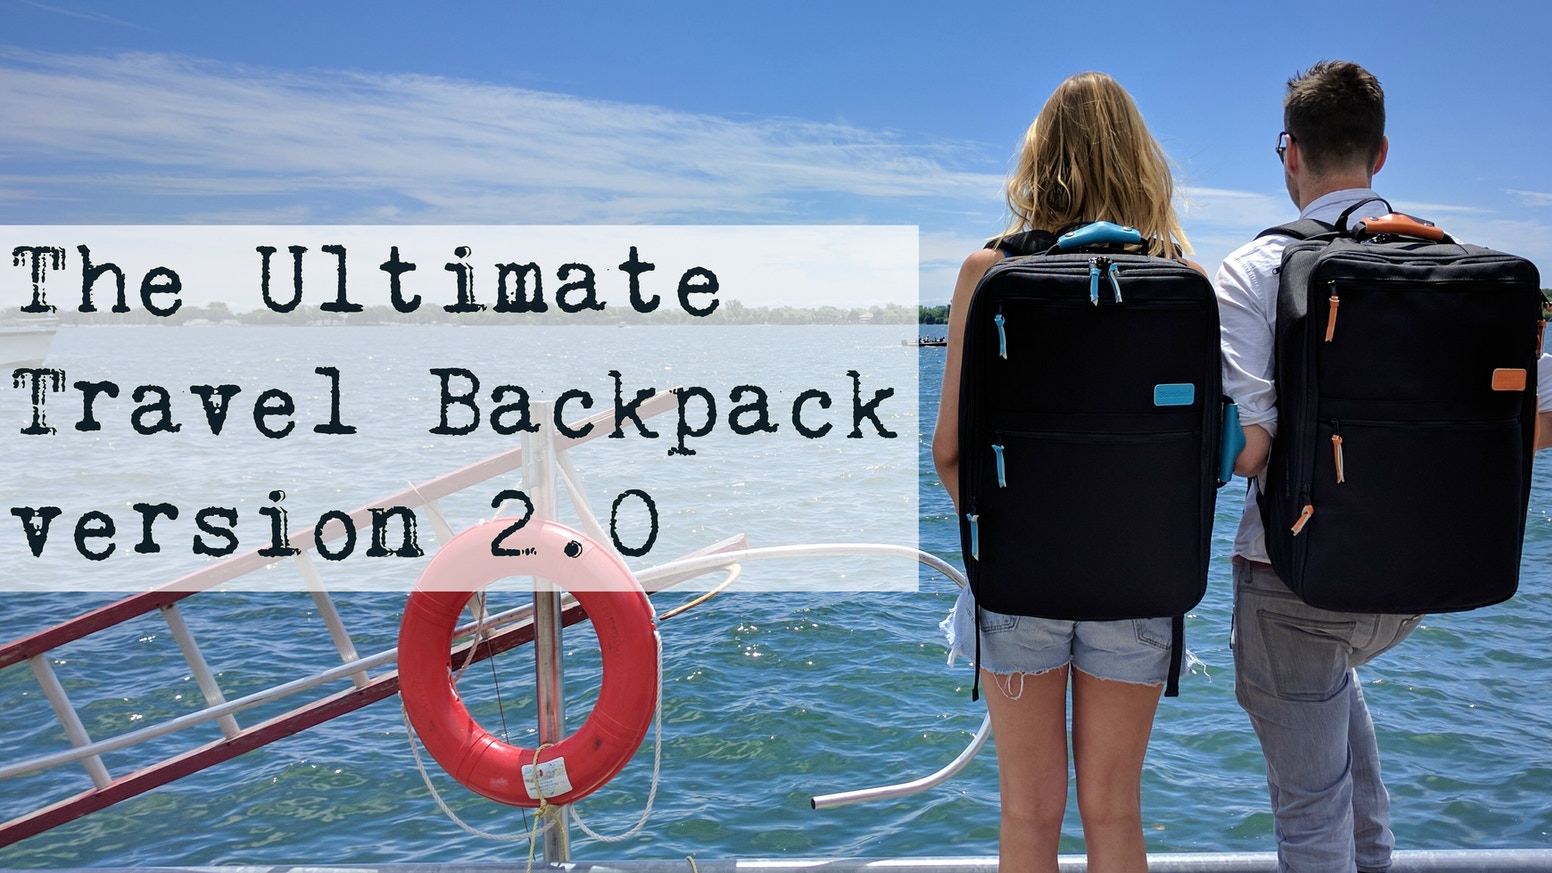 The Ultimate Backpack for Travellers is back! Designed to be the only travel bag you'll ever need. Come see what's new and updated v2.0